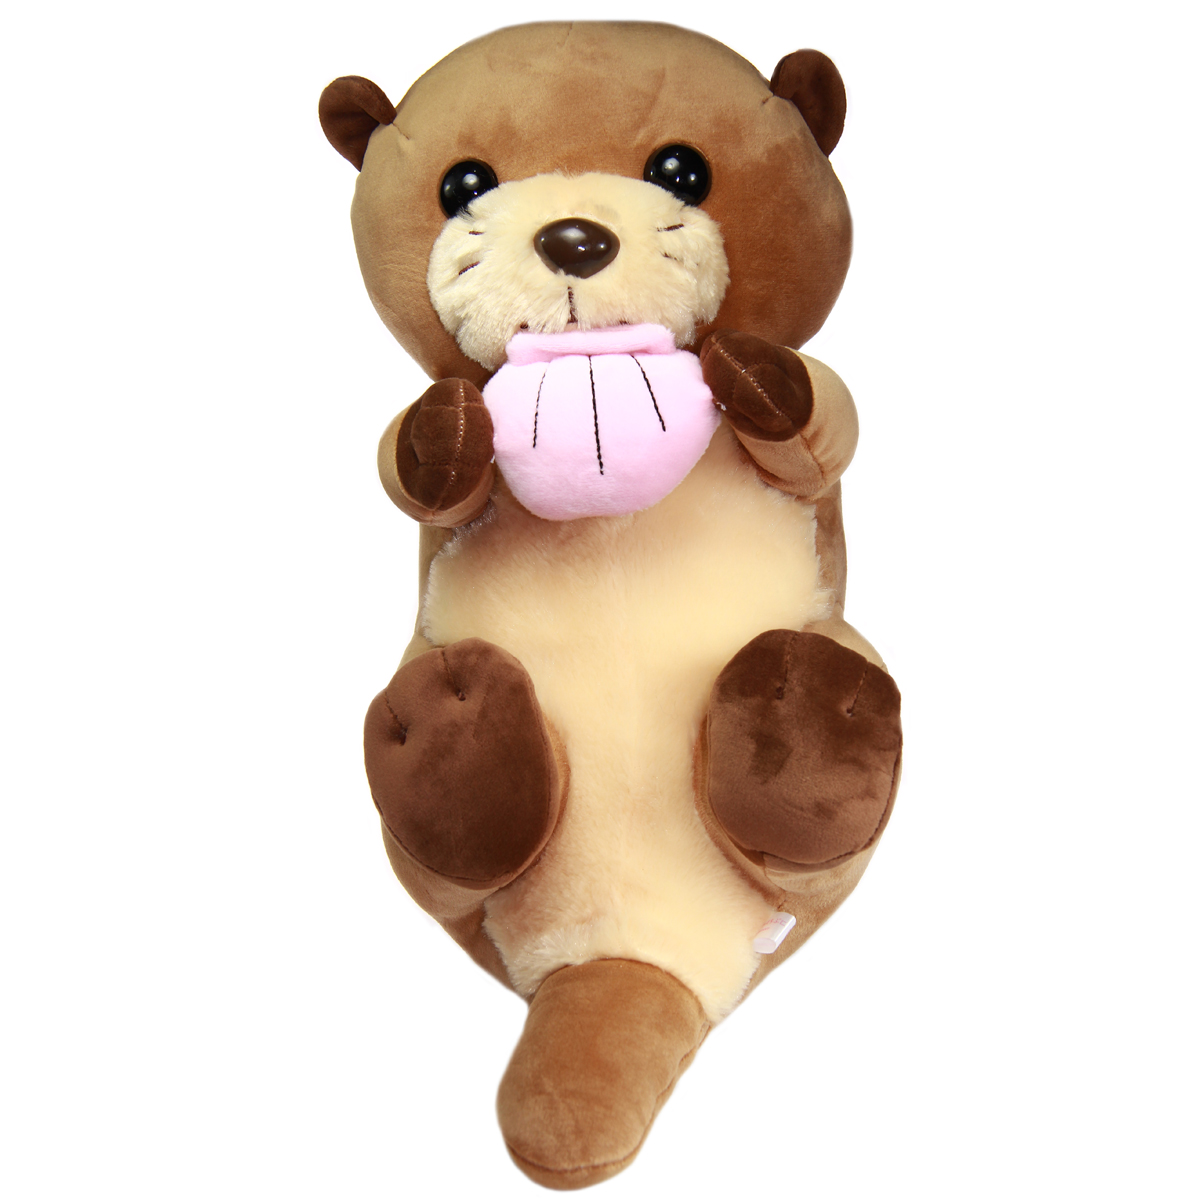 Mochi Puni Kawauso Collection Soft Otter Plush Toy With Sea Shell Brown 17 Inches BIG